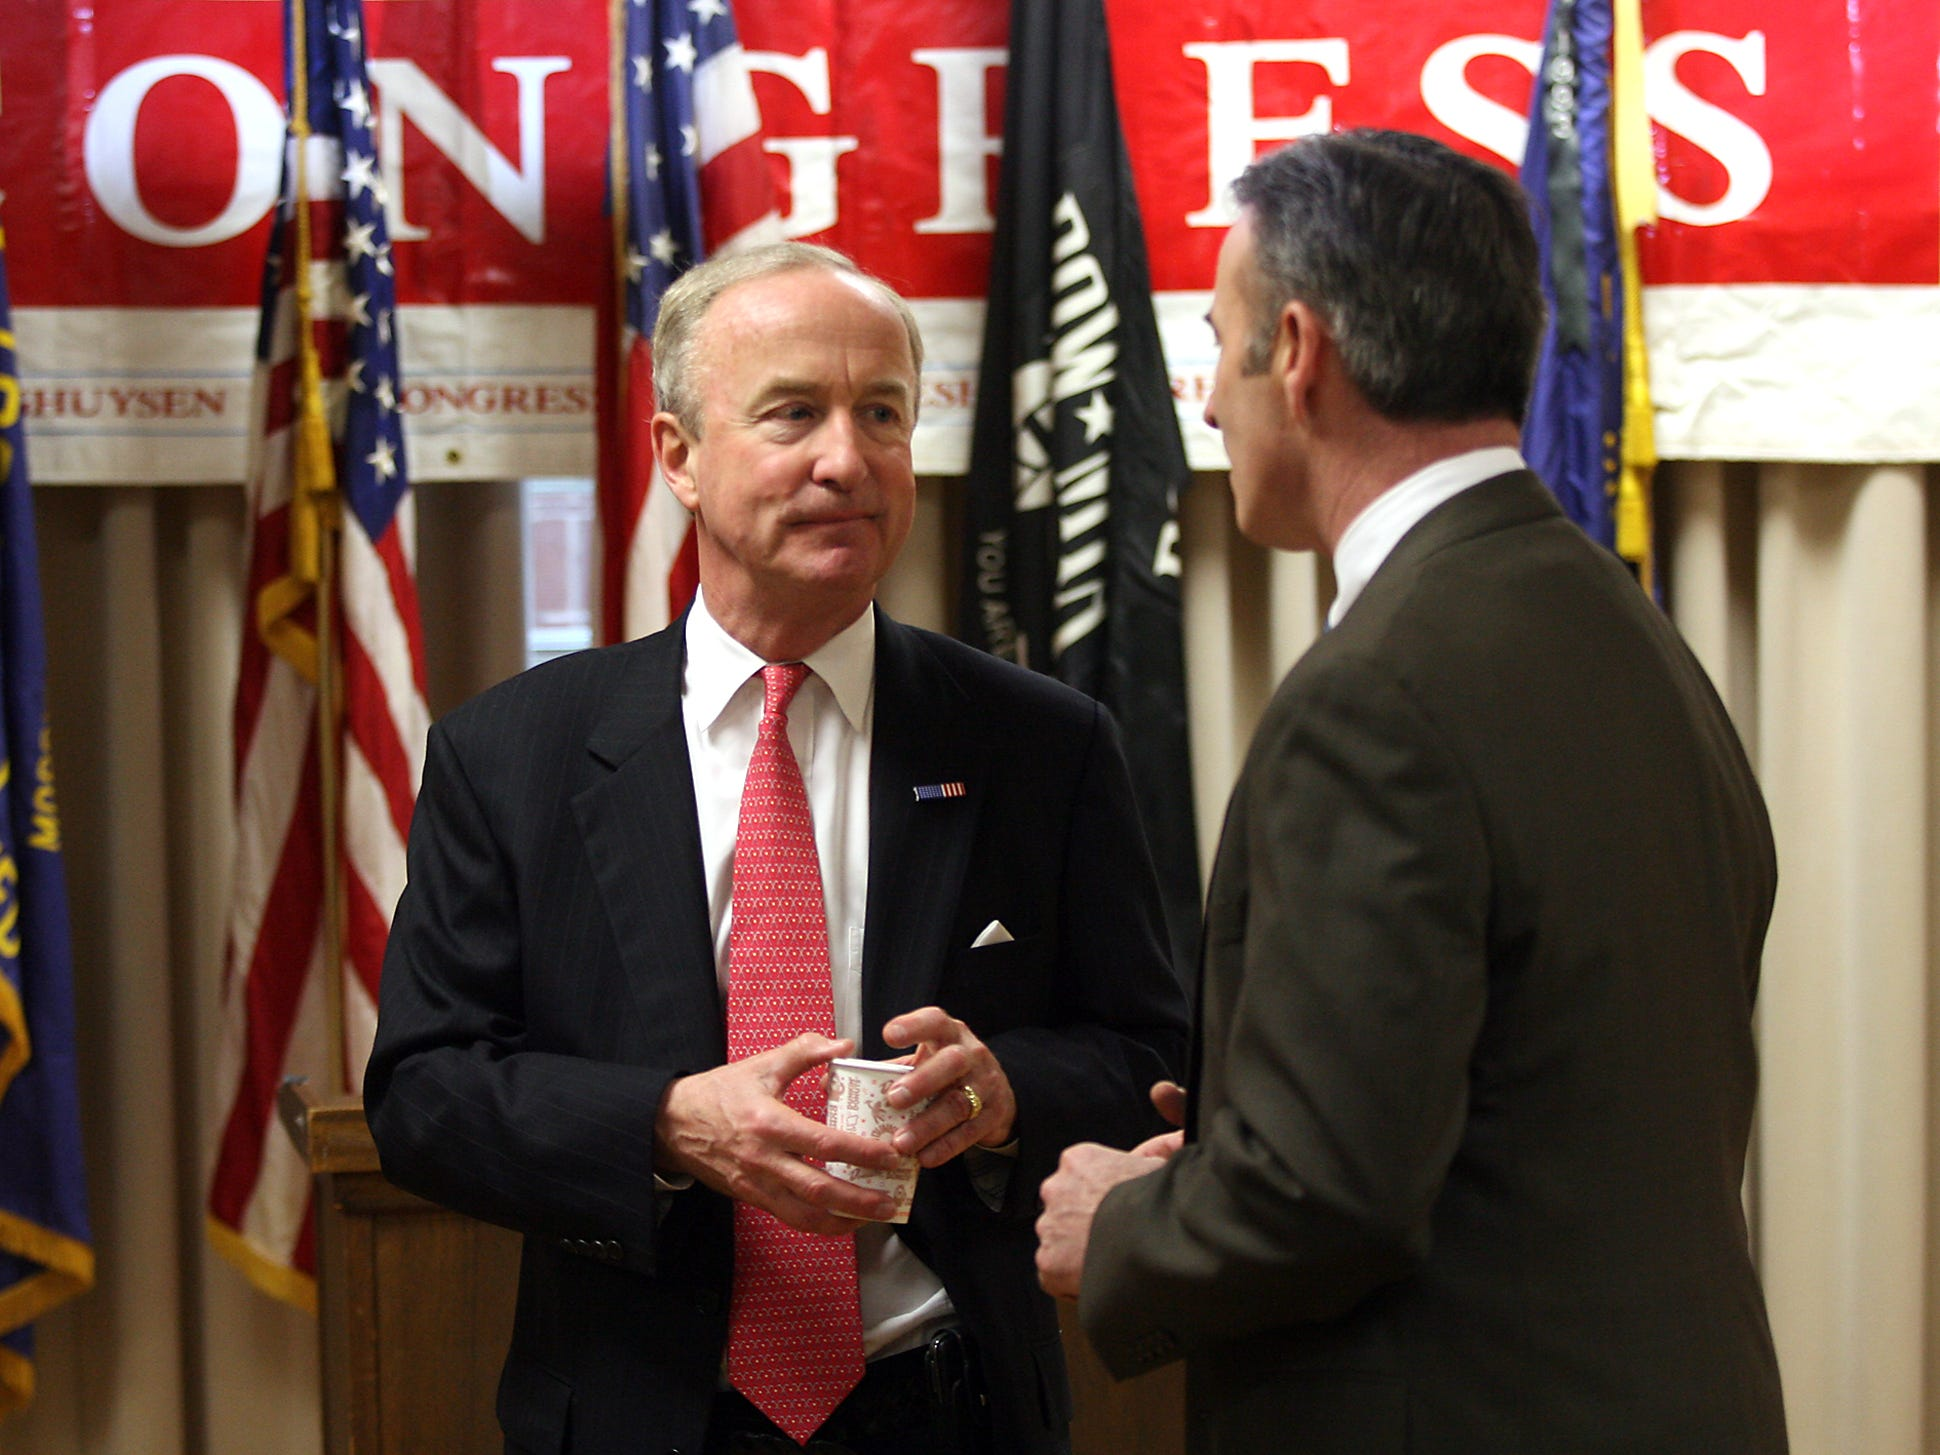 Morris Plains, March 22, 2010--Congressman Rodney Frelinghuysen, l, talks with Morris County Freeholder John Murphy after announcing at Morris Plains VFW Post 3401 that he would be running for re-election.